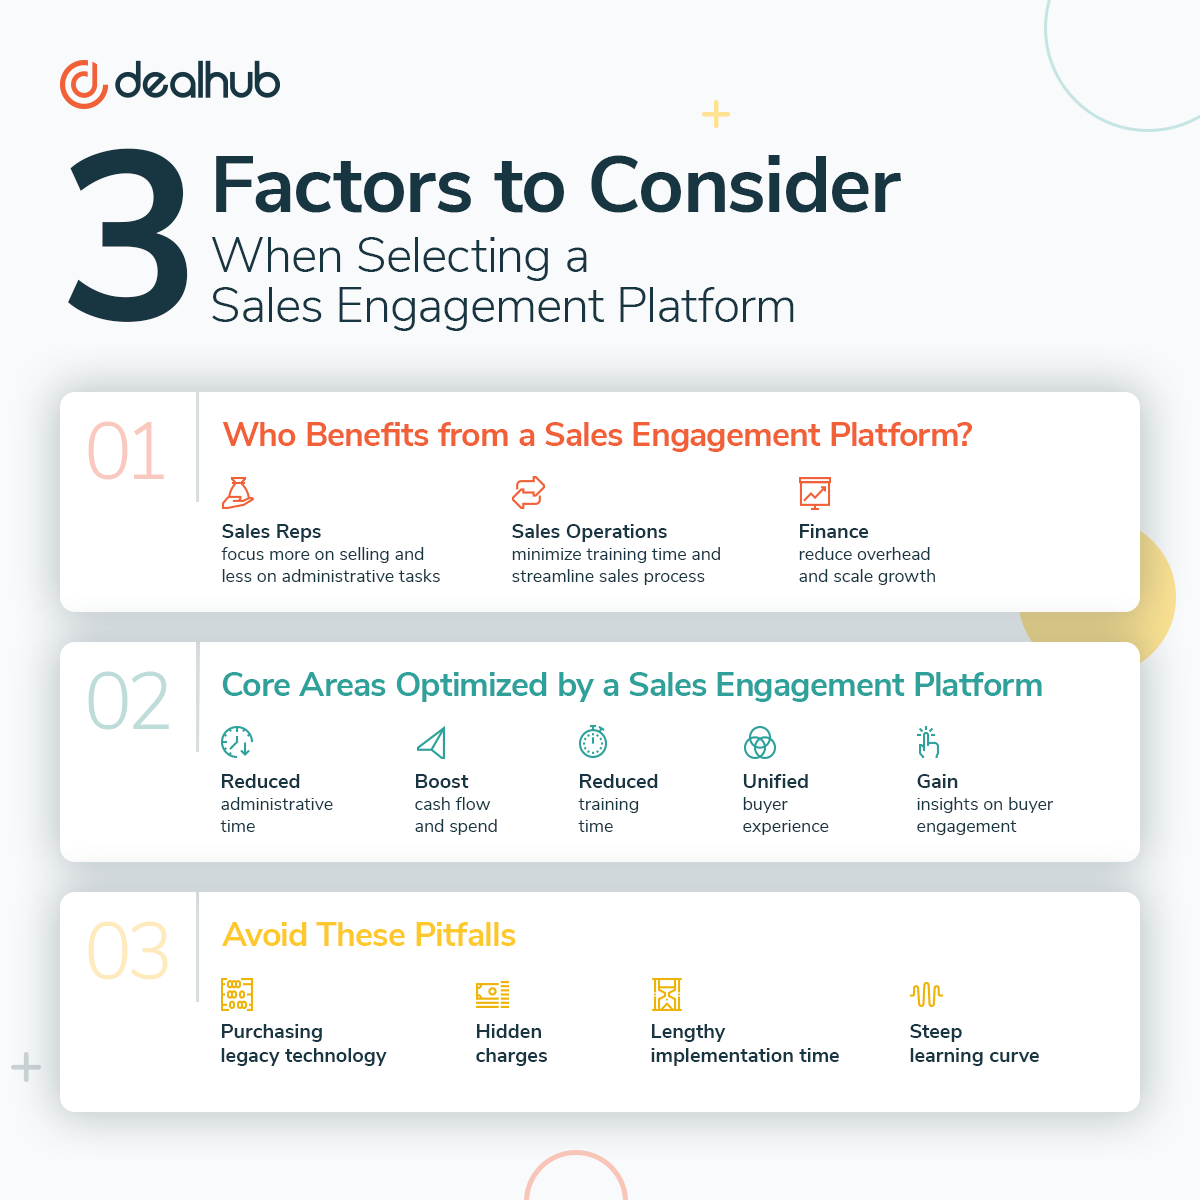 3 Factors to Consider - Selecting a Sales Engagement Platform